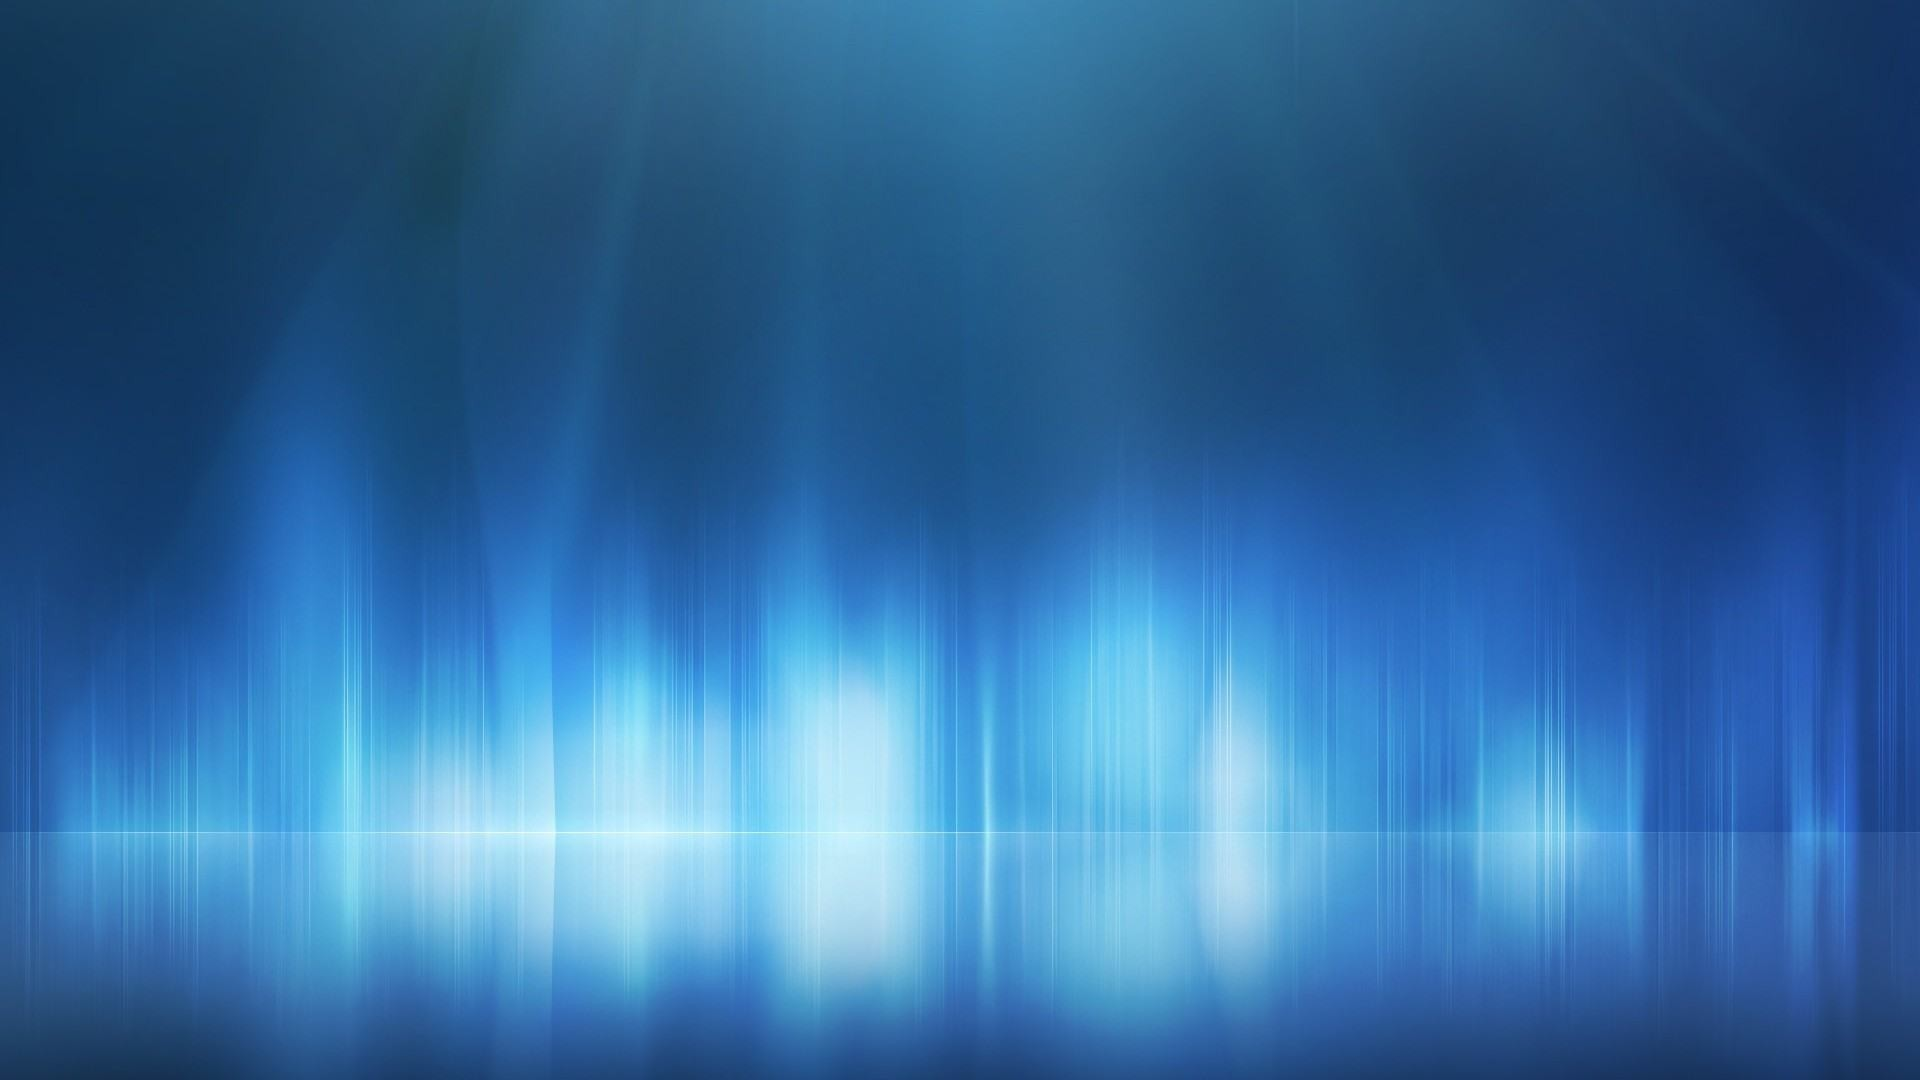 Res: 1920x1080, Wallpapers Backgrounds - wallpaper abstract background rock tastic tech  wallpapers